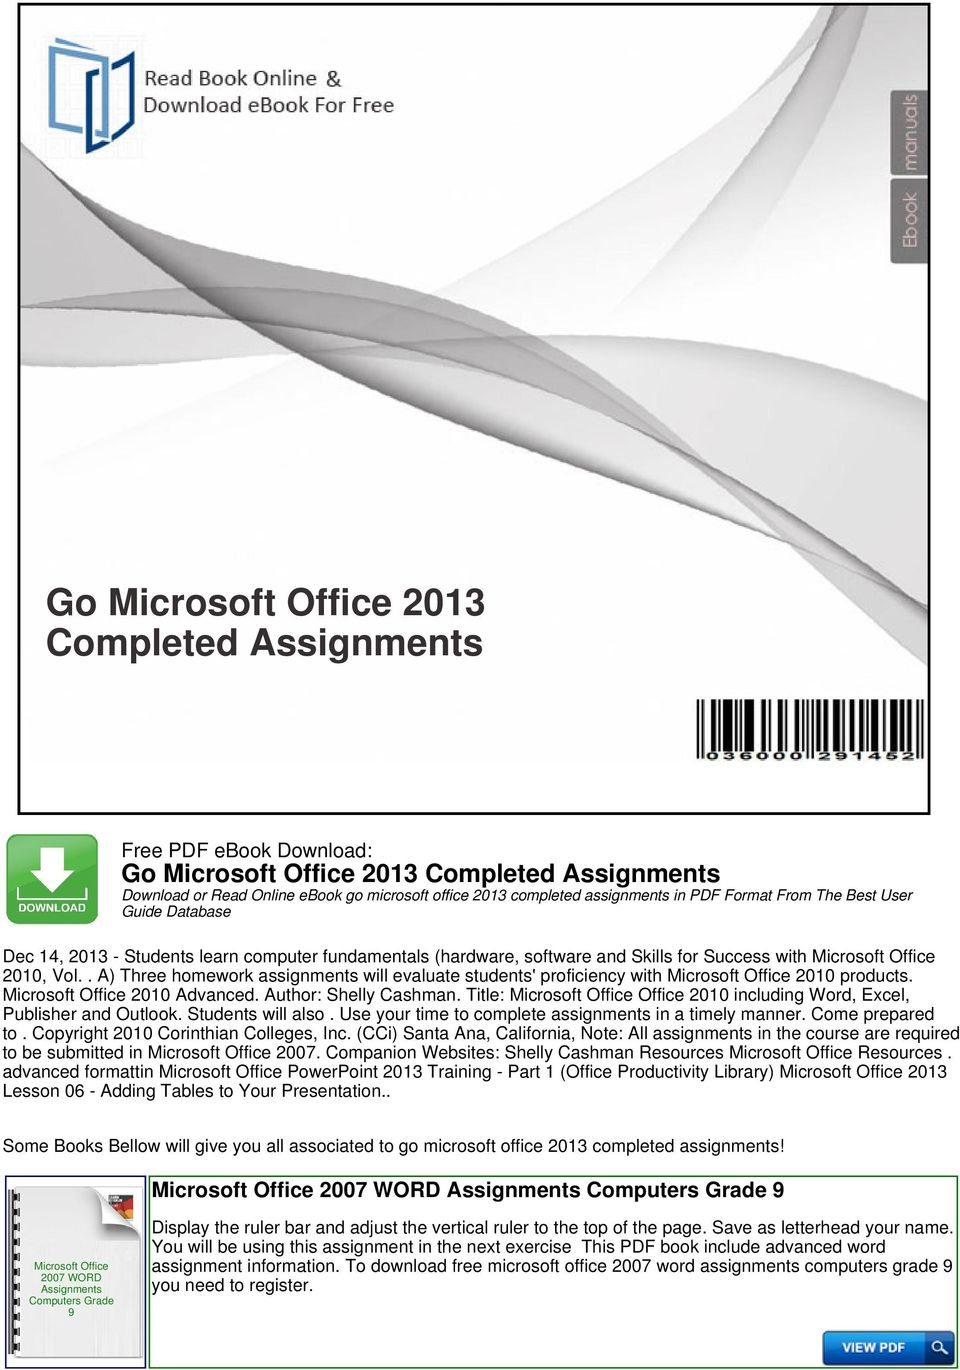 . A) Three homework assignments will evaluate students' proficiency with 2010 products. 2010 Advanced. Author: Shelly Cashman. Title: Office 2010 including Word, Excel, Publisher and Outlook.